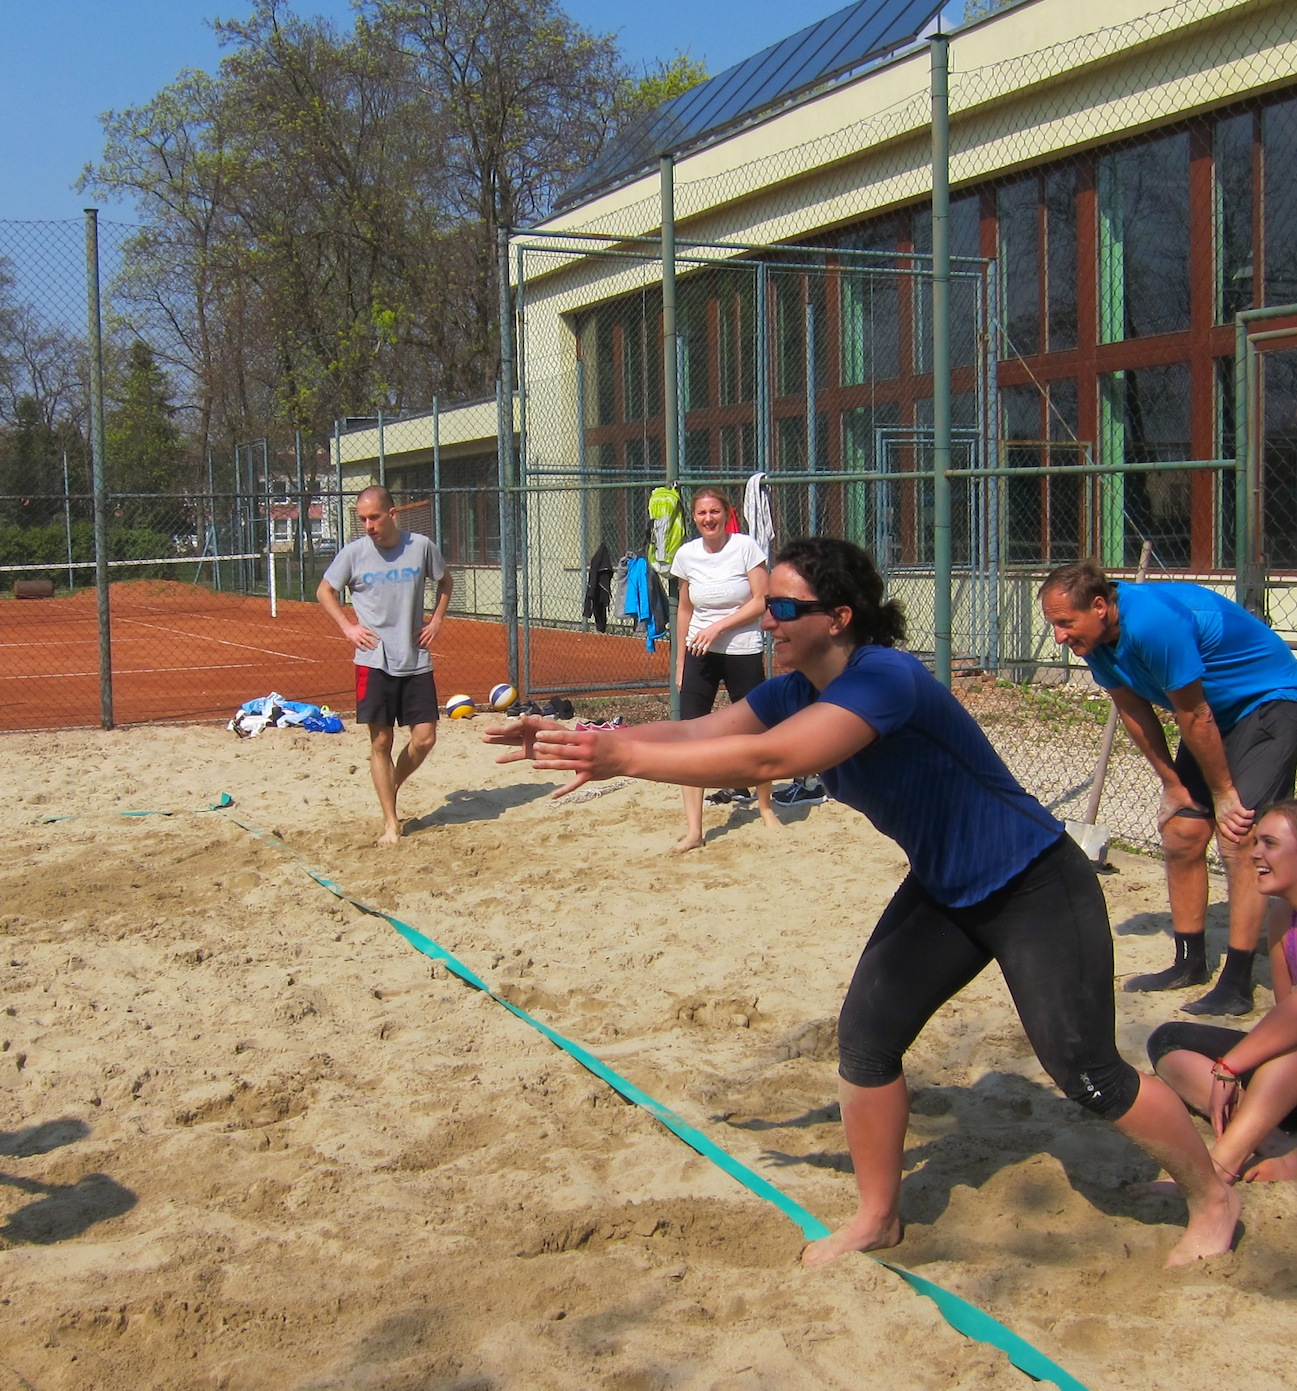 Beach Volley Akademia, Tina Zlatoš Turnerová